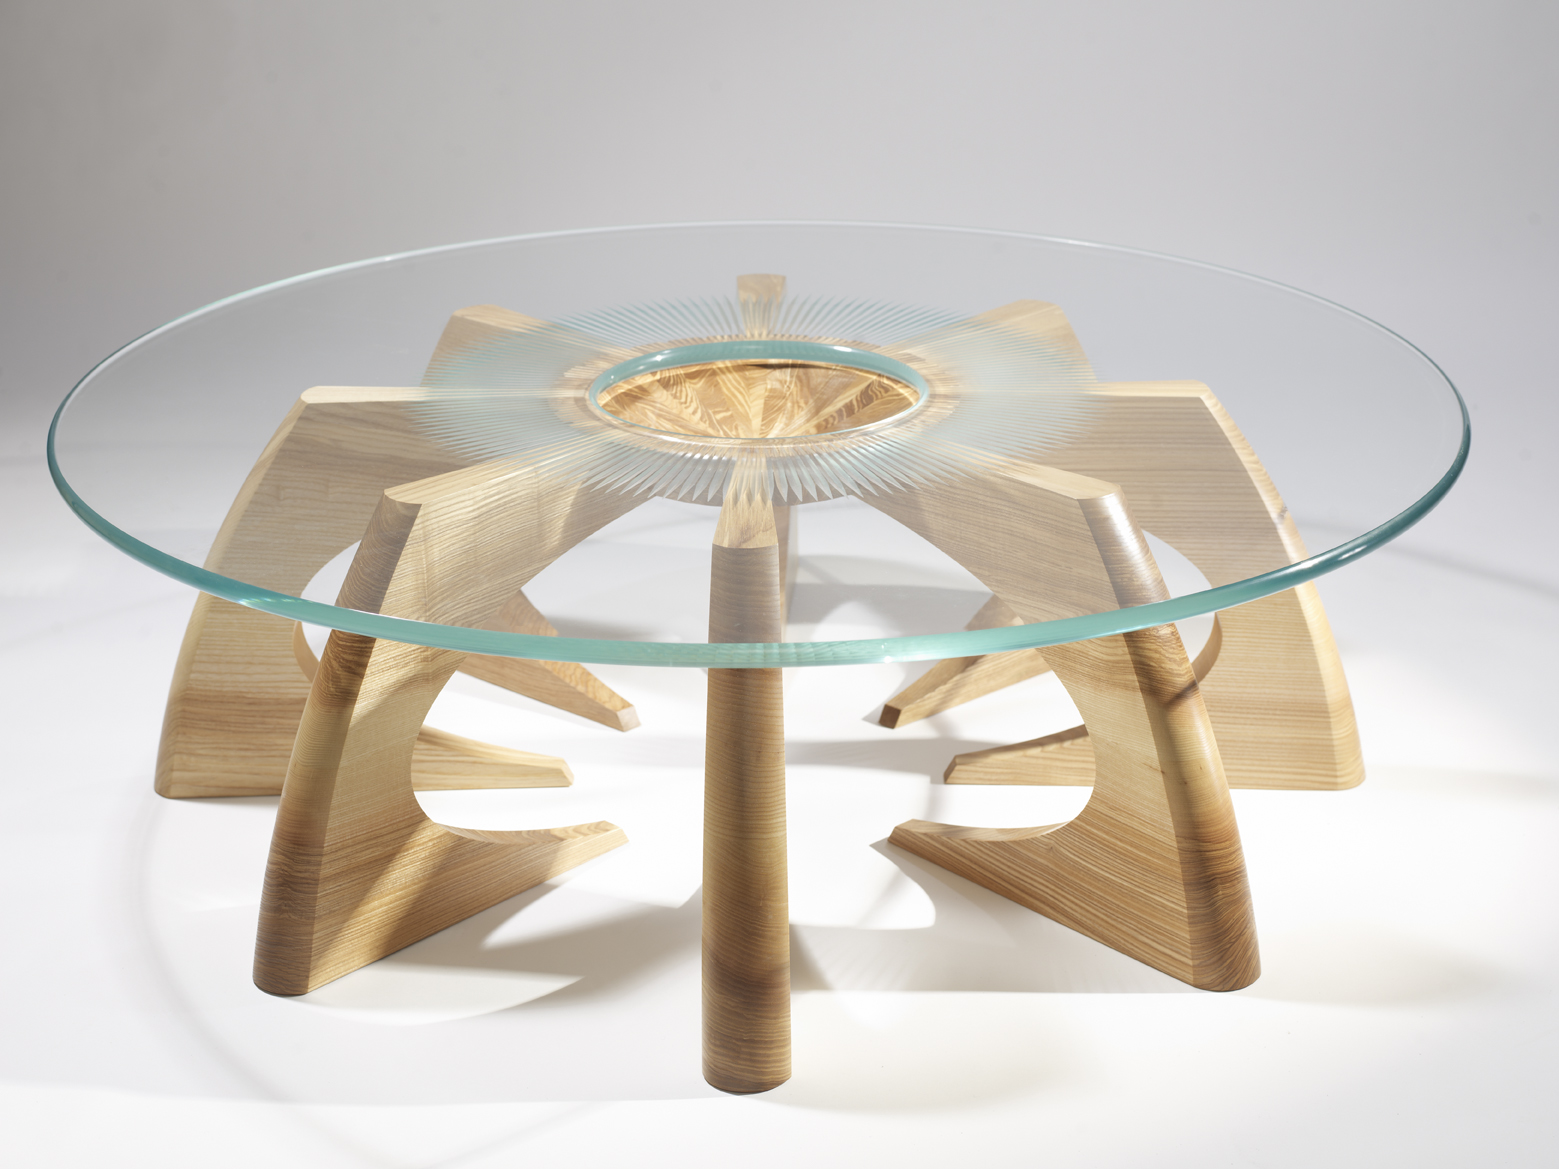 Interior house design a minimalist table but can produce beauty indoors - Wood furniture design ...